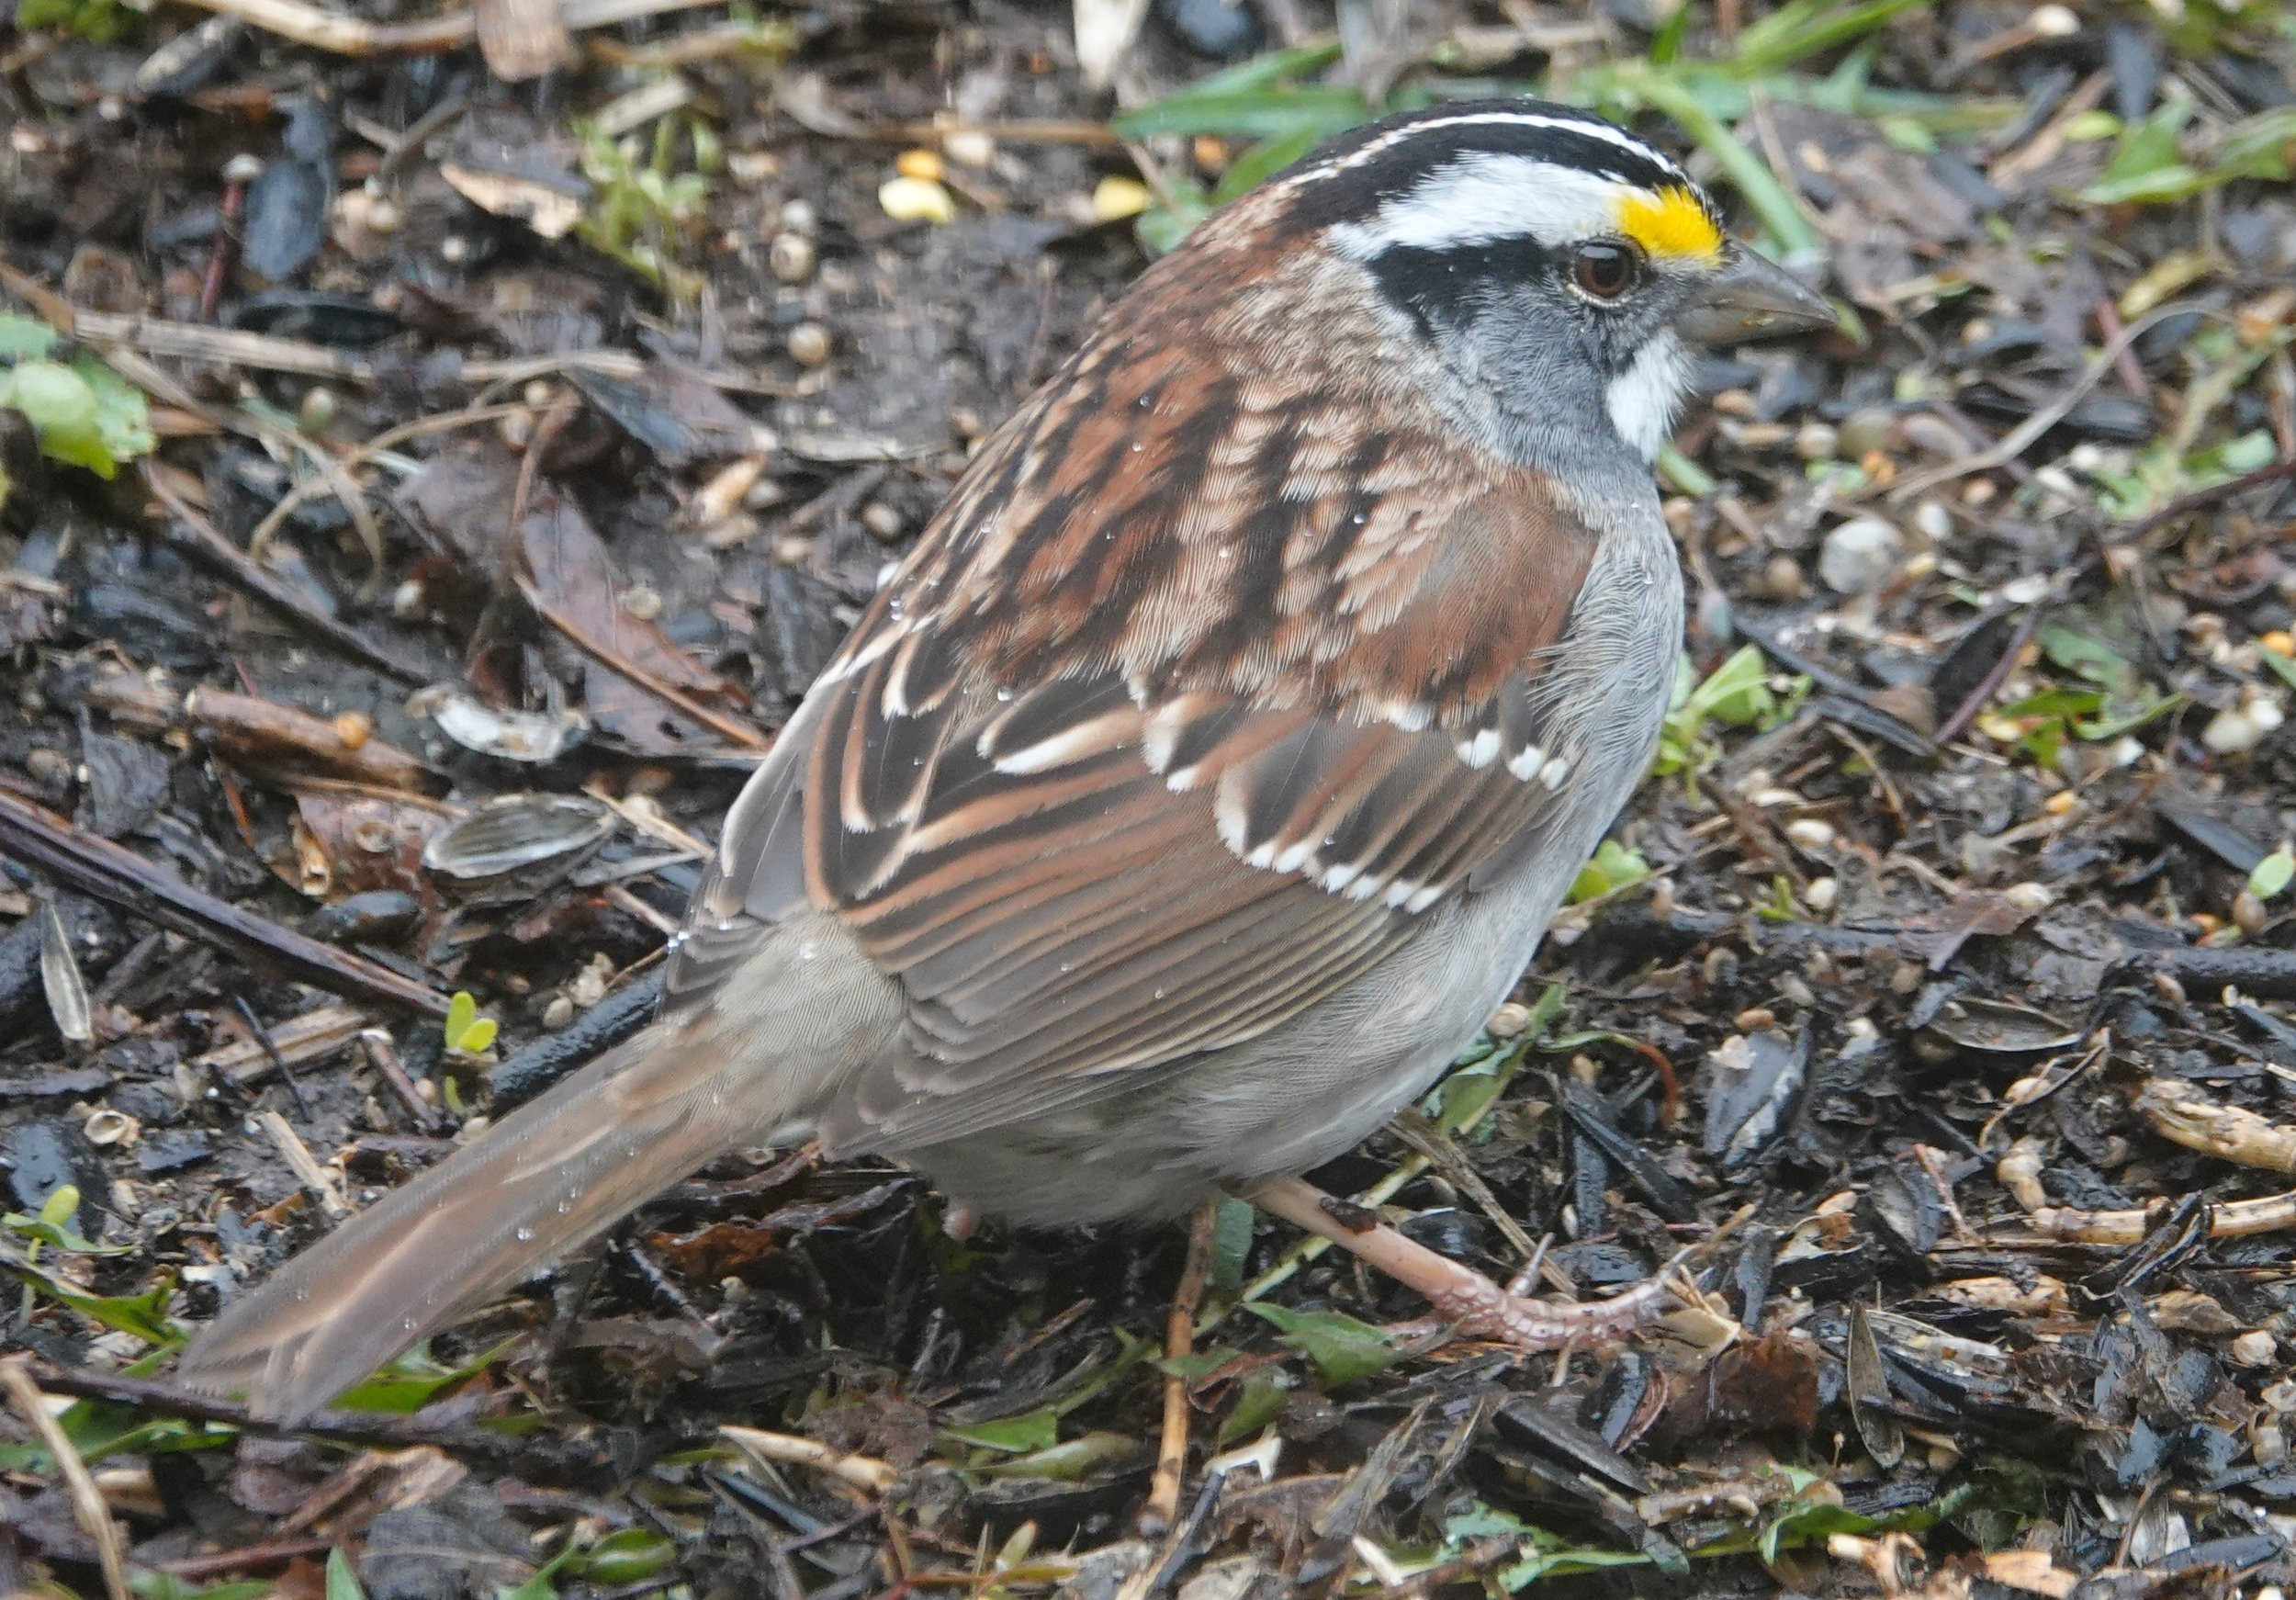 The head stripes on a white-throated sparrow could be white or tan.